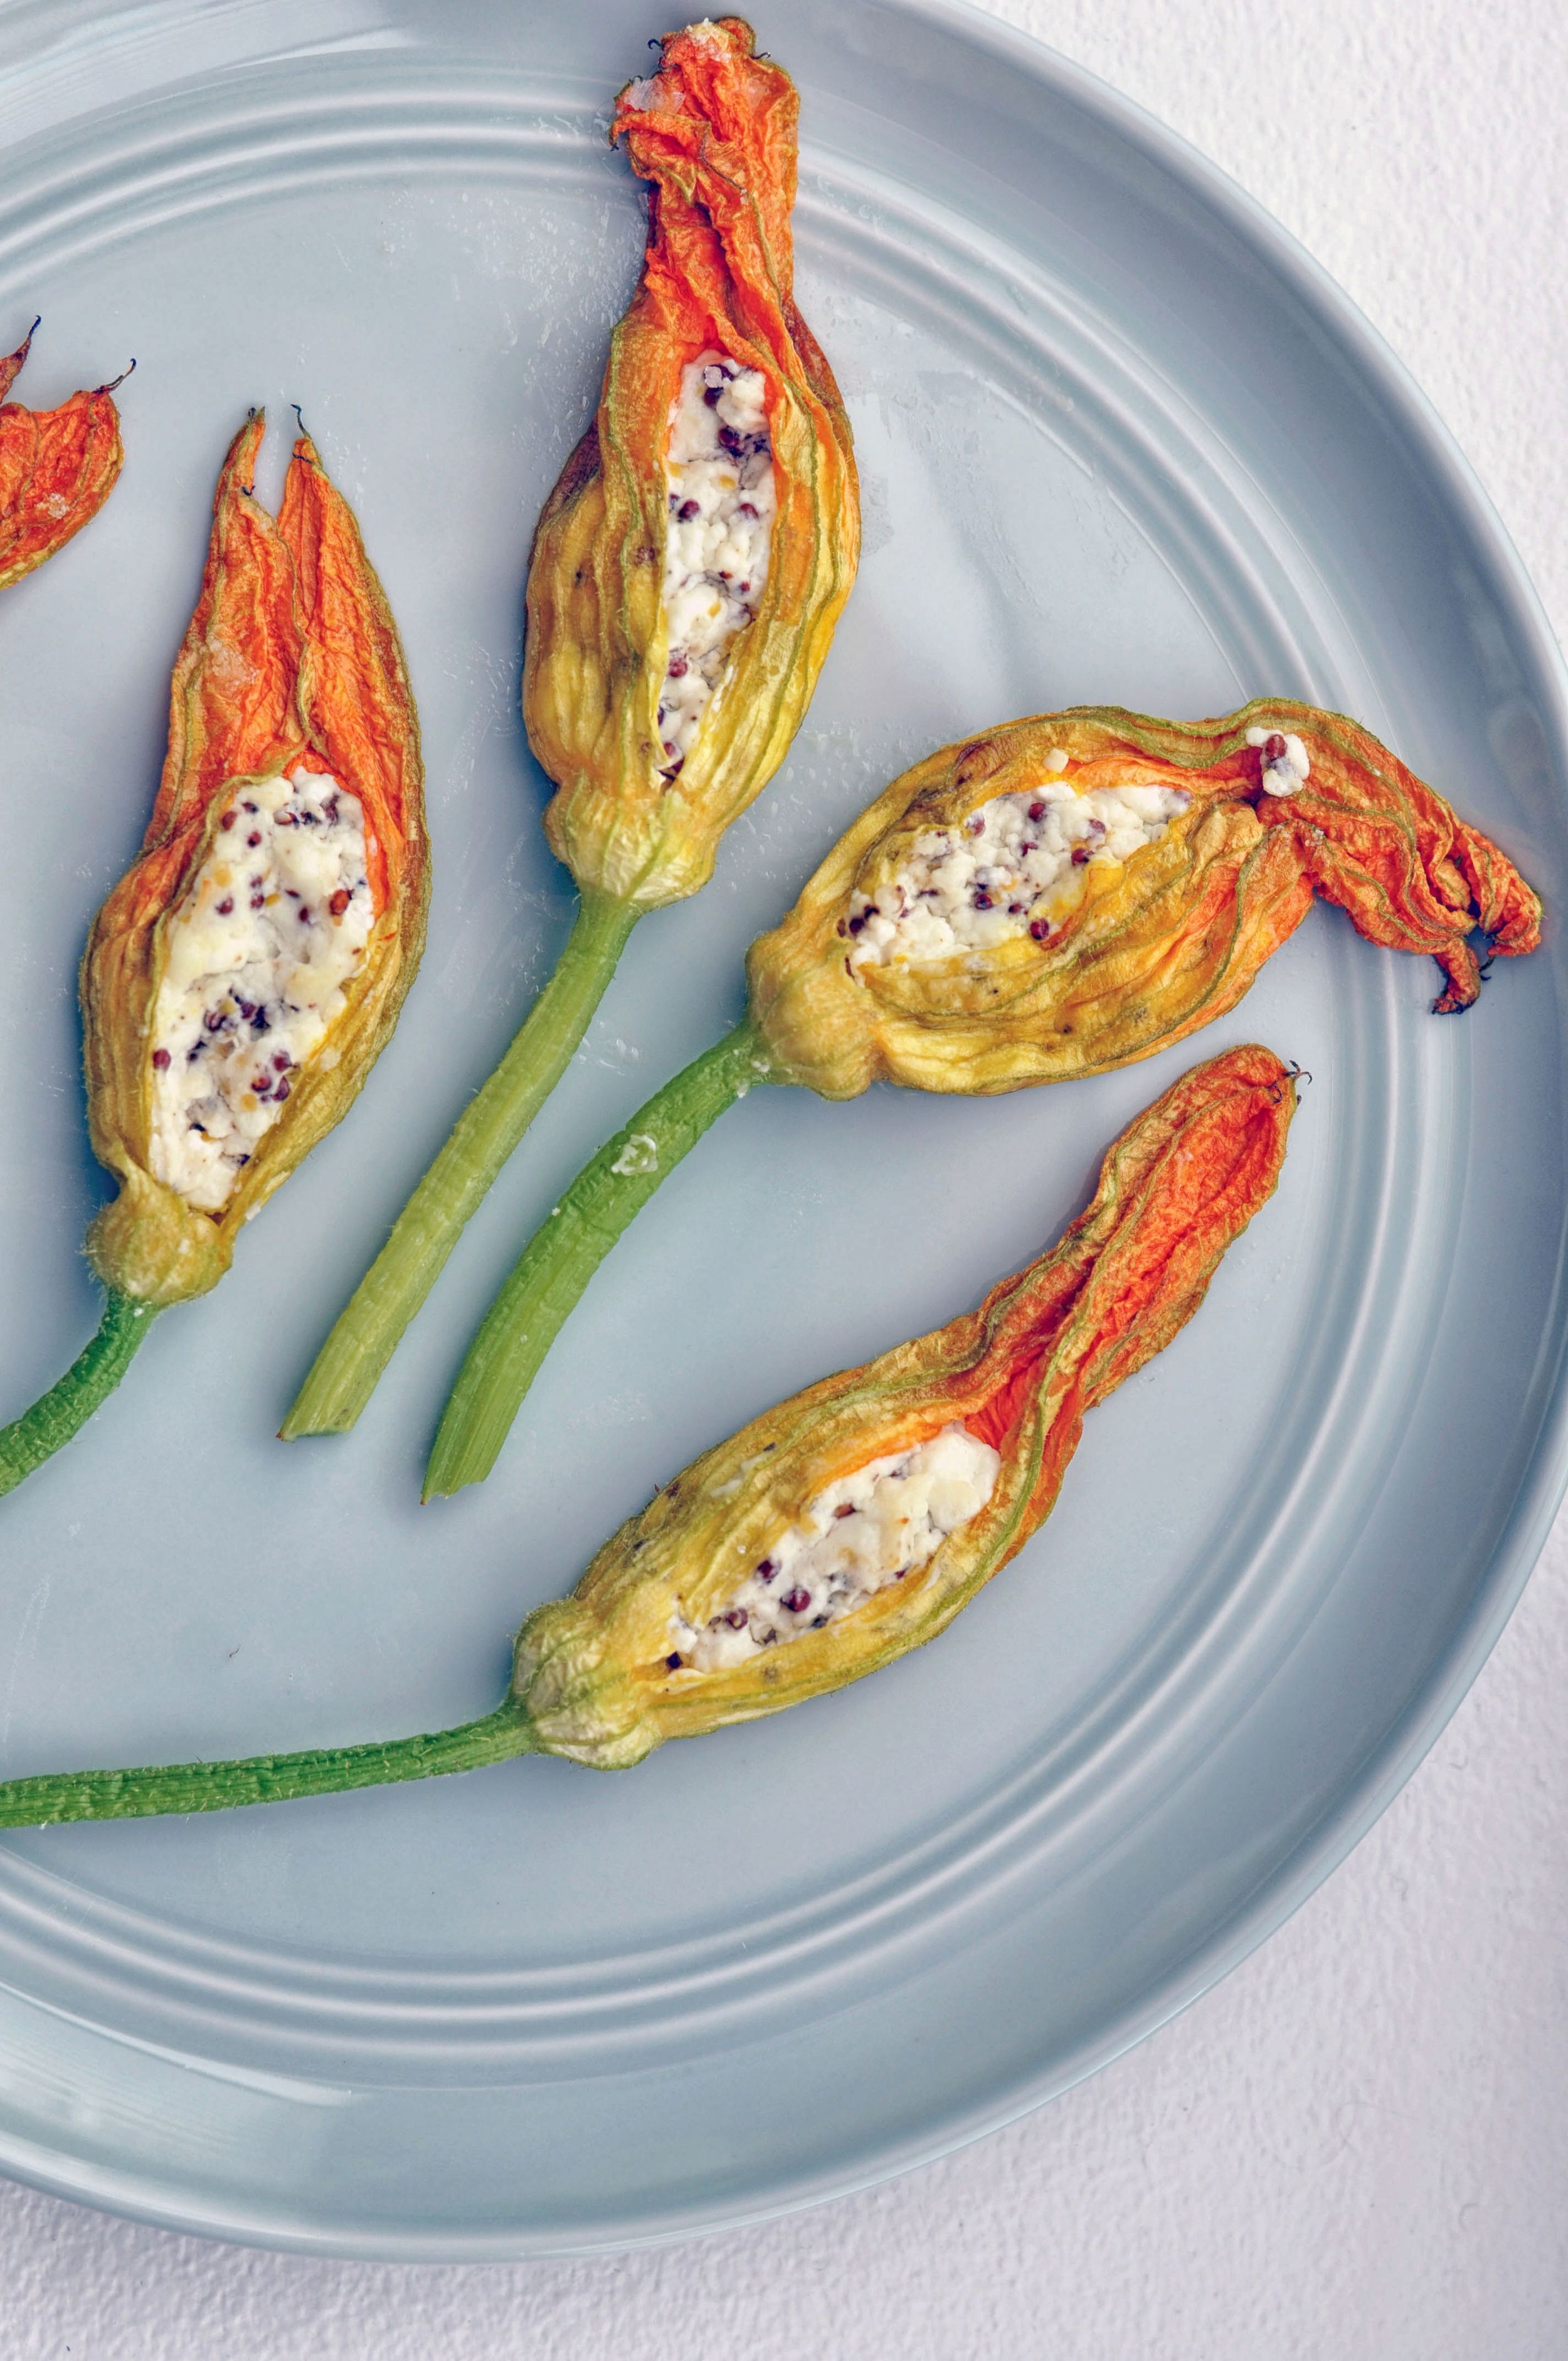 Baked Stuffed Squash Blossoms - These baked stuffed squash blossoms are a delightful treat! They are creamy, tangy, and wonderfully floral.